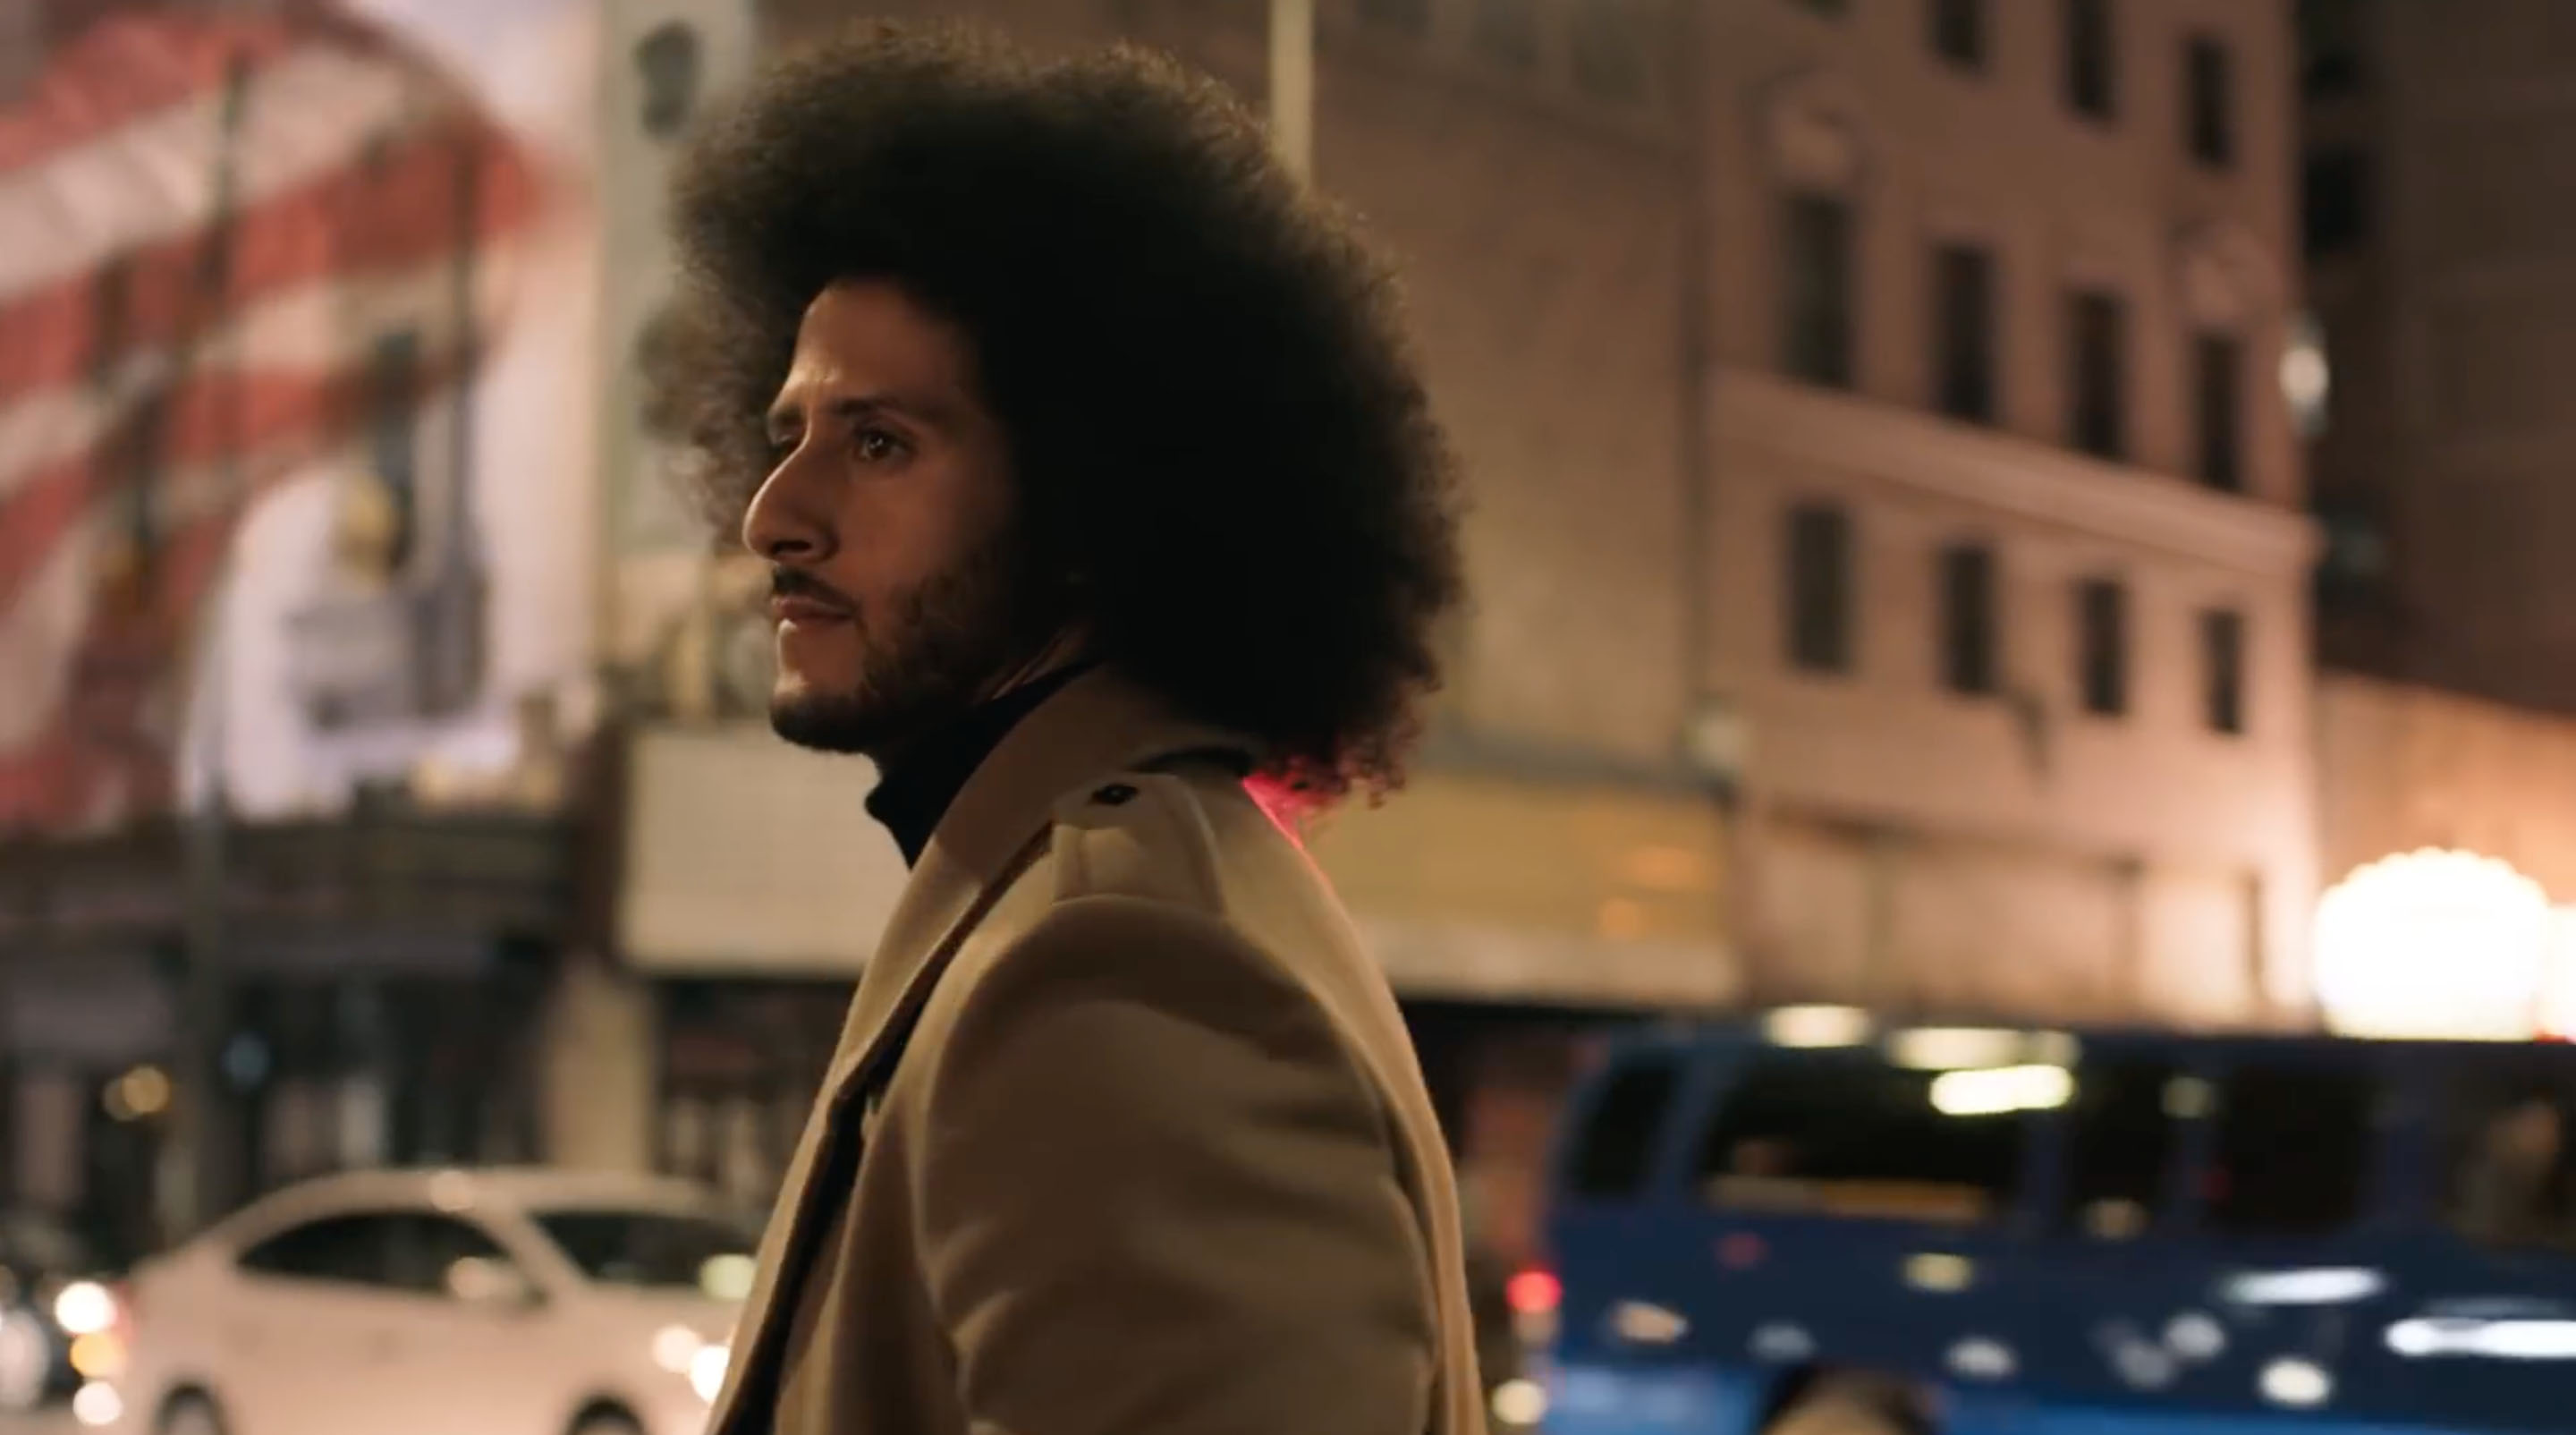 colin-kaepernick-'dream-crazy'-nike-commercial-gets-nominated-for-2019-emmy